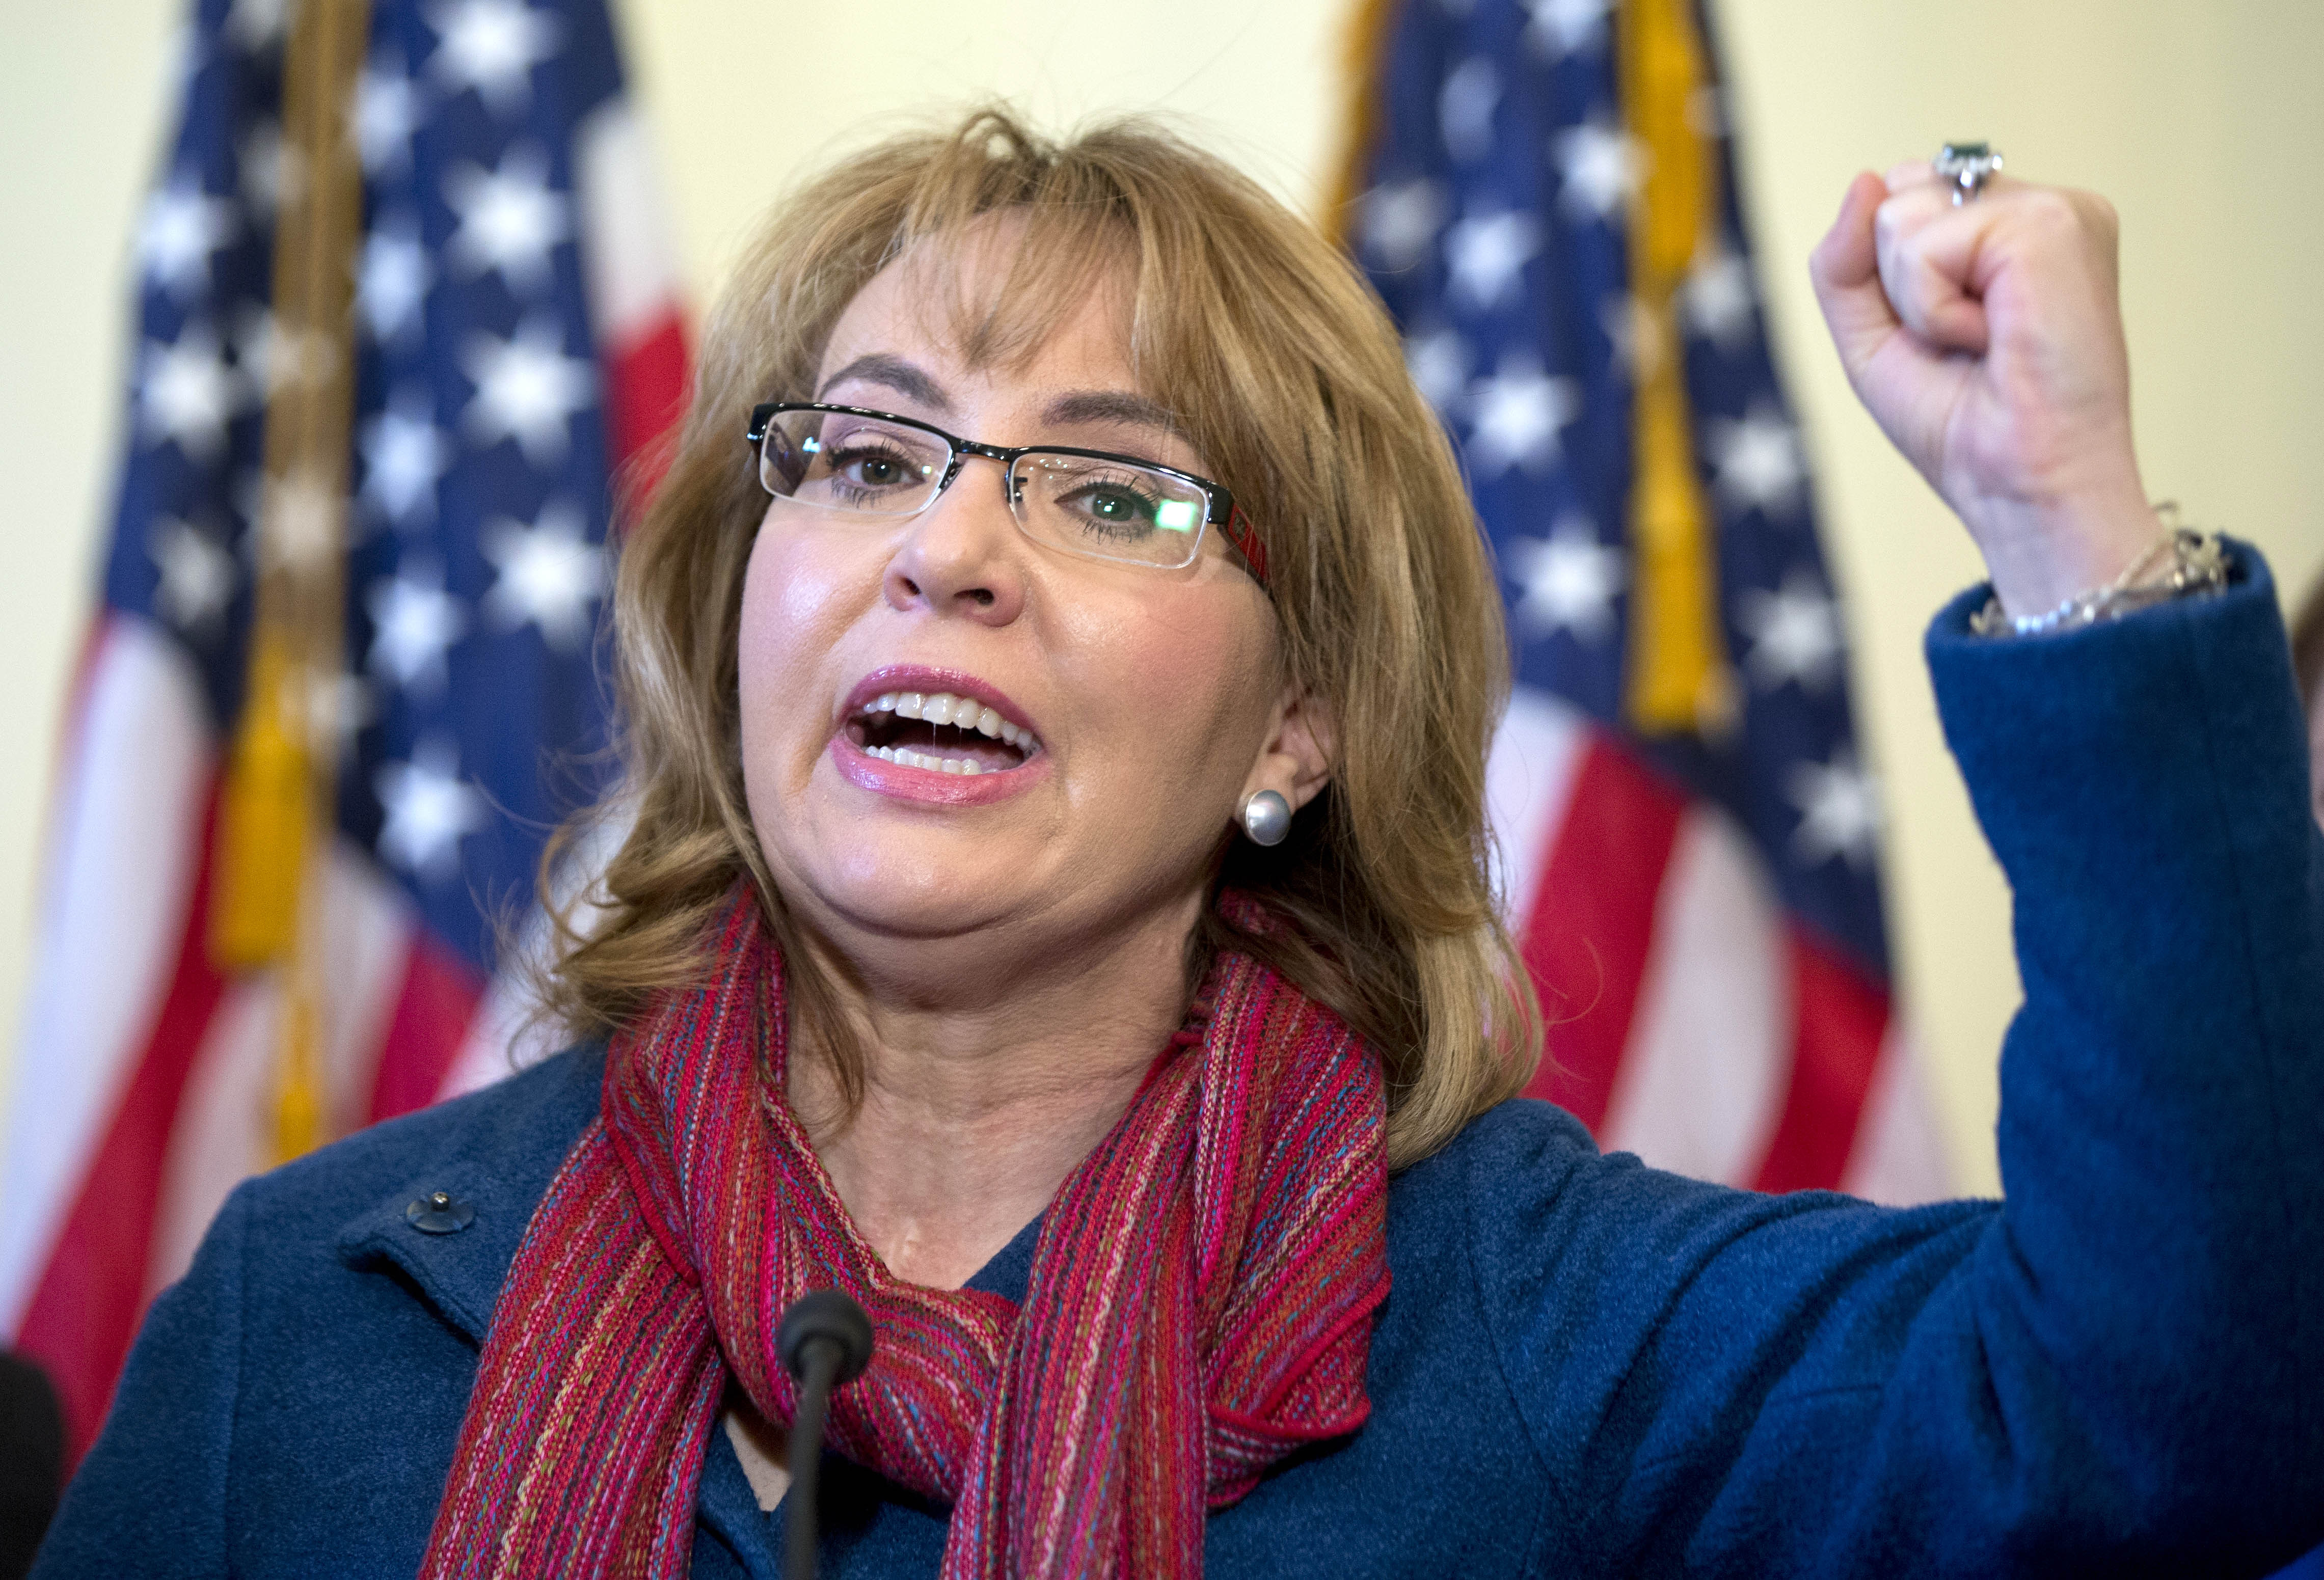 Attack On Lawmakers Stirs Memories Of Giffords Shooting Woai